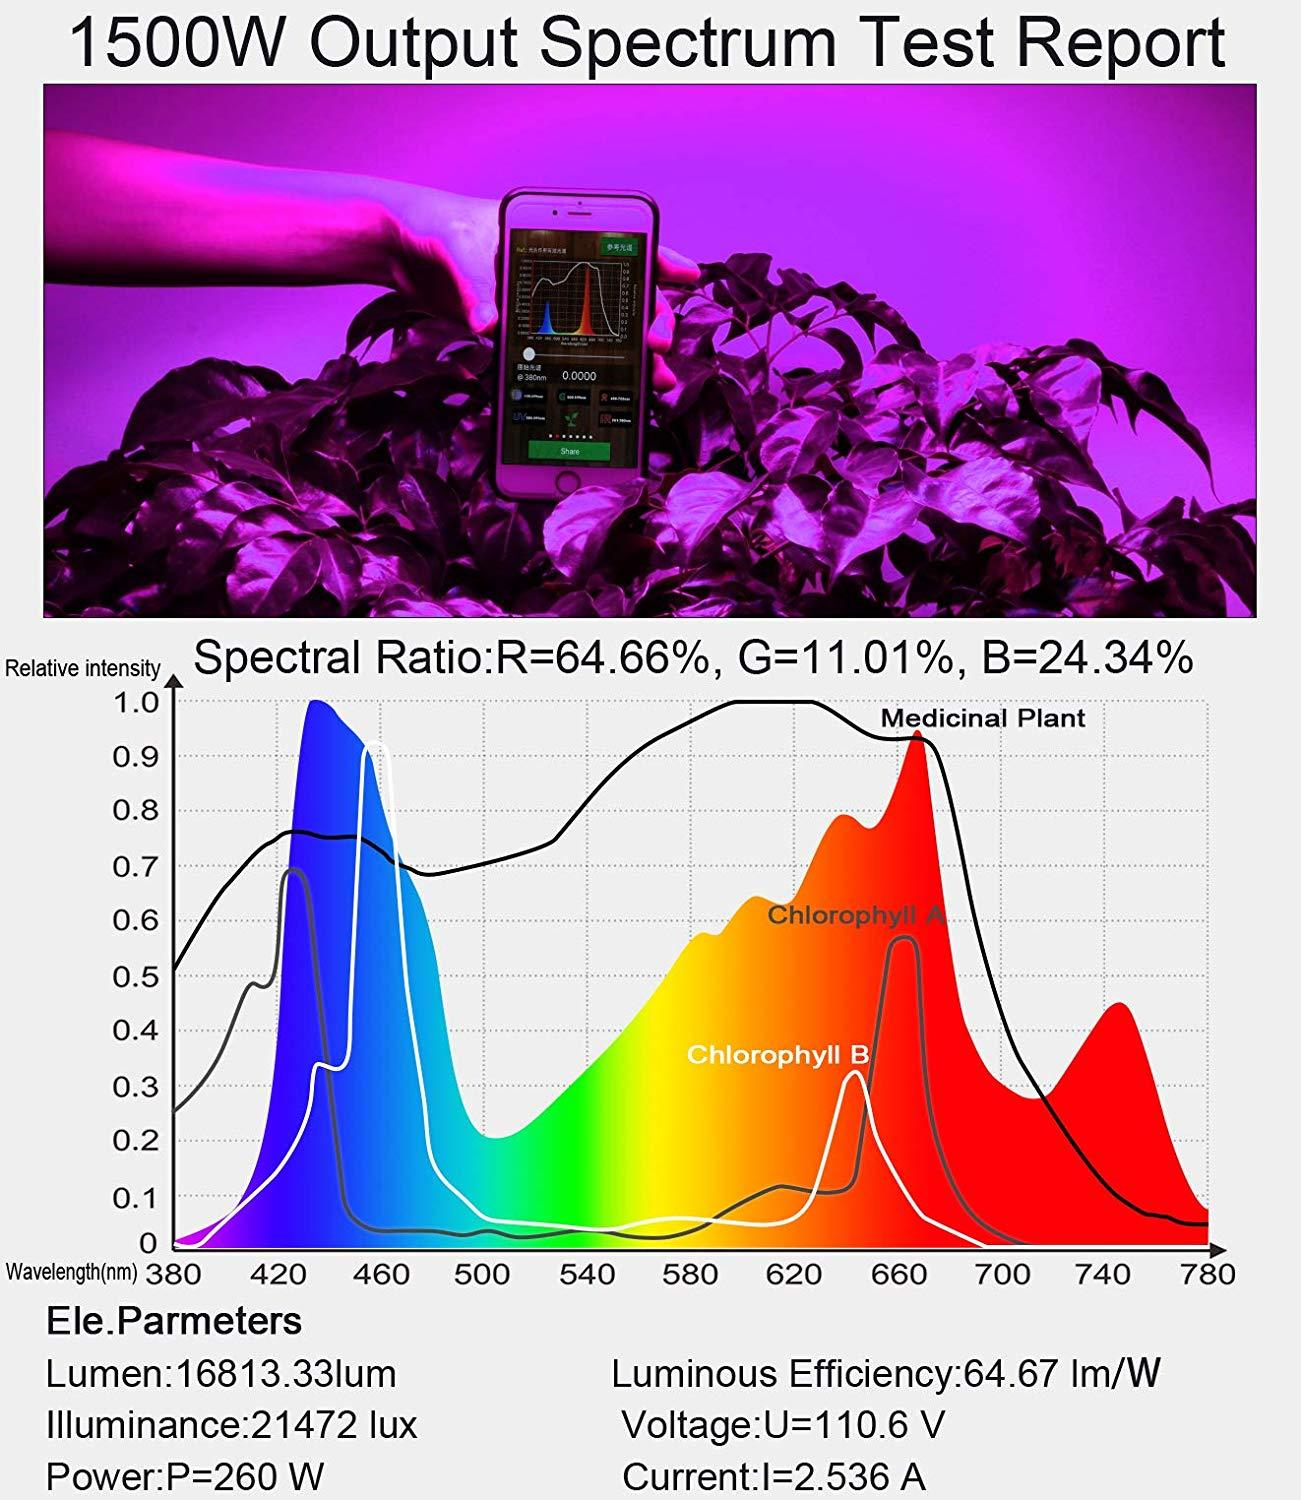 King Plus 1500W Spectrum Graph - Why It is one of the best led grow light under 200